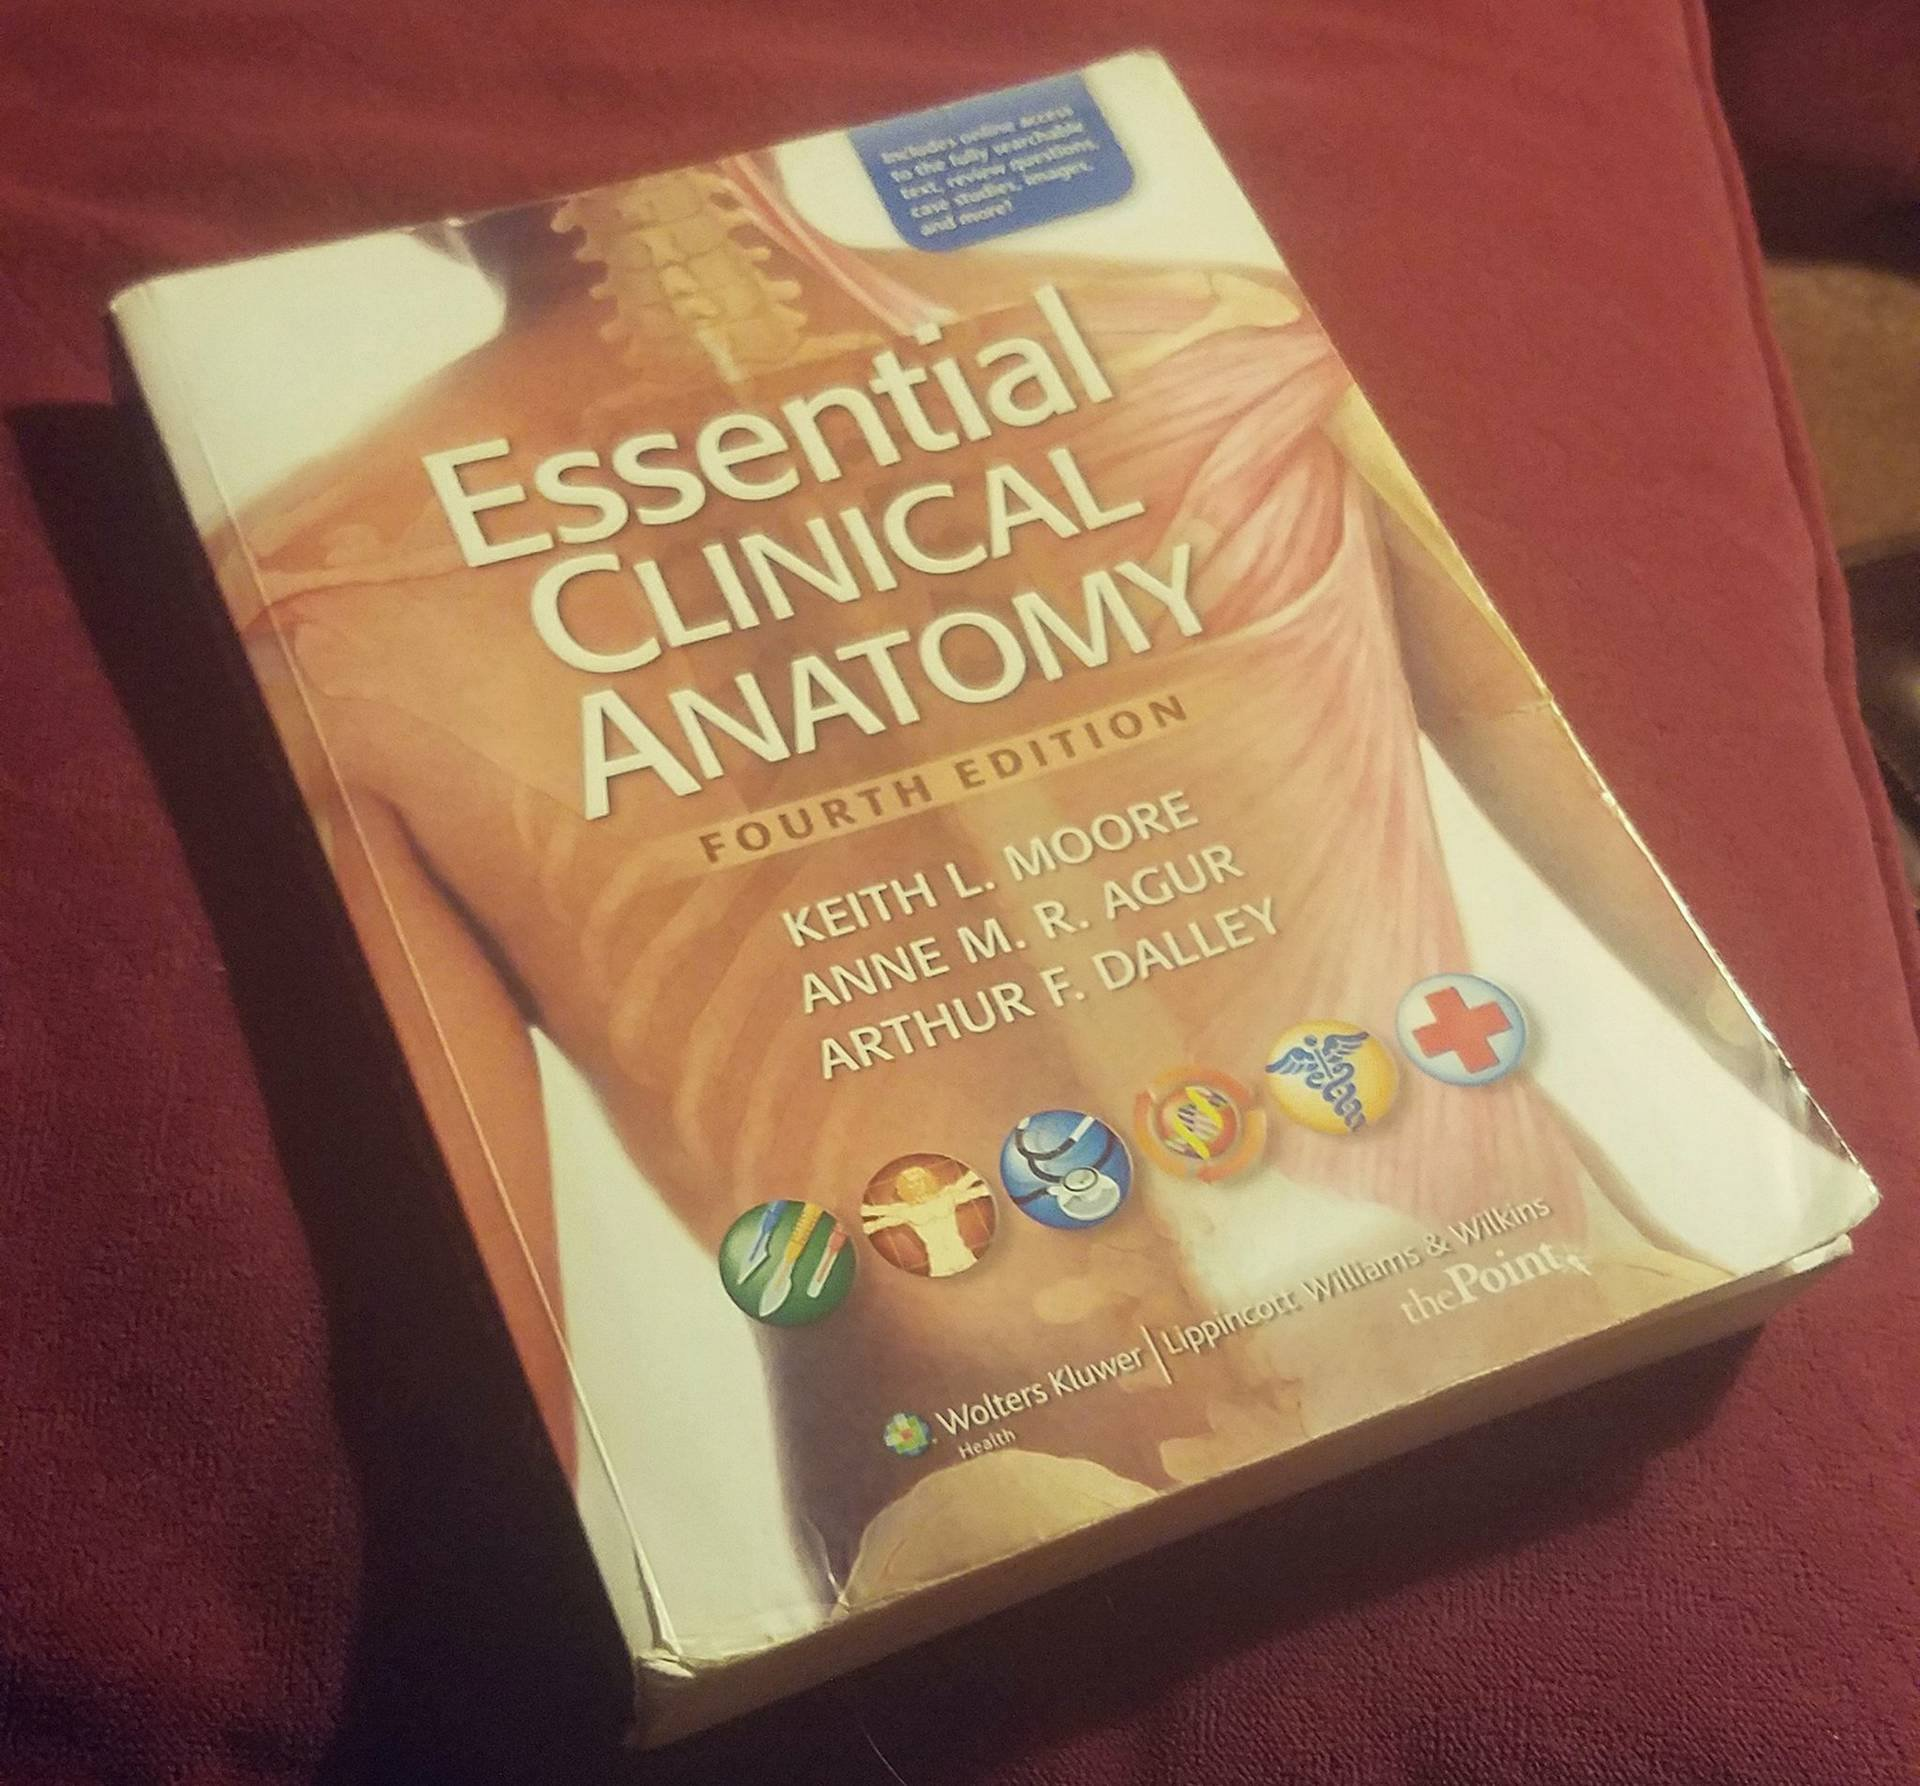 Essential Clinical Anatomy, International Edition by Keith L. Moore ...